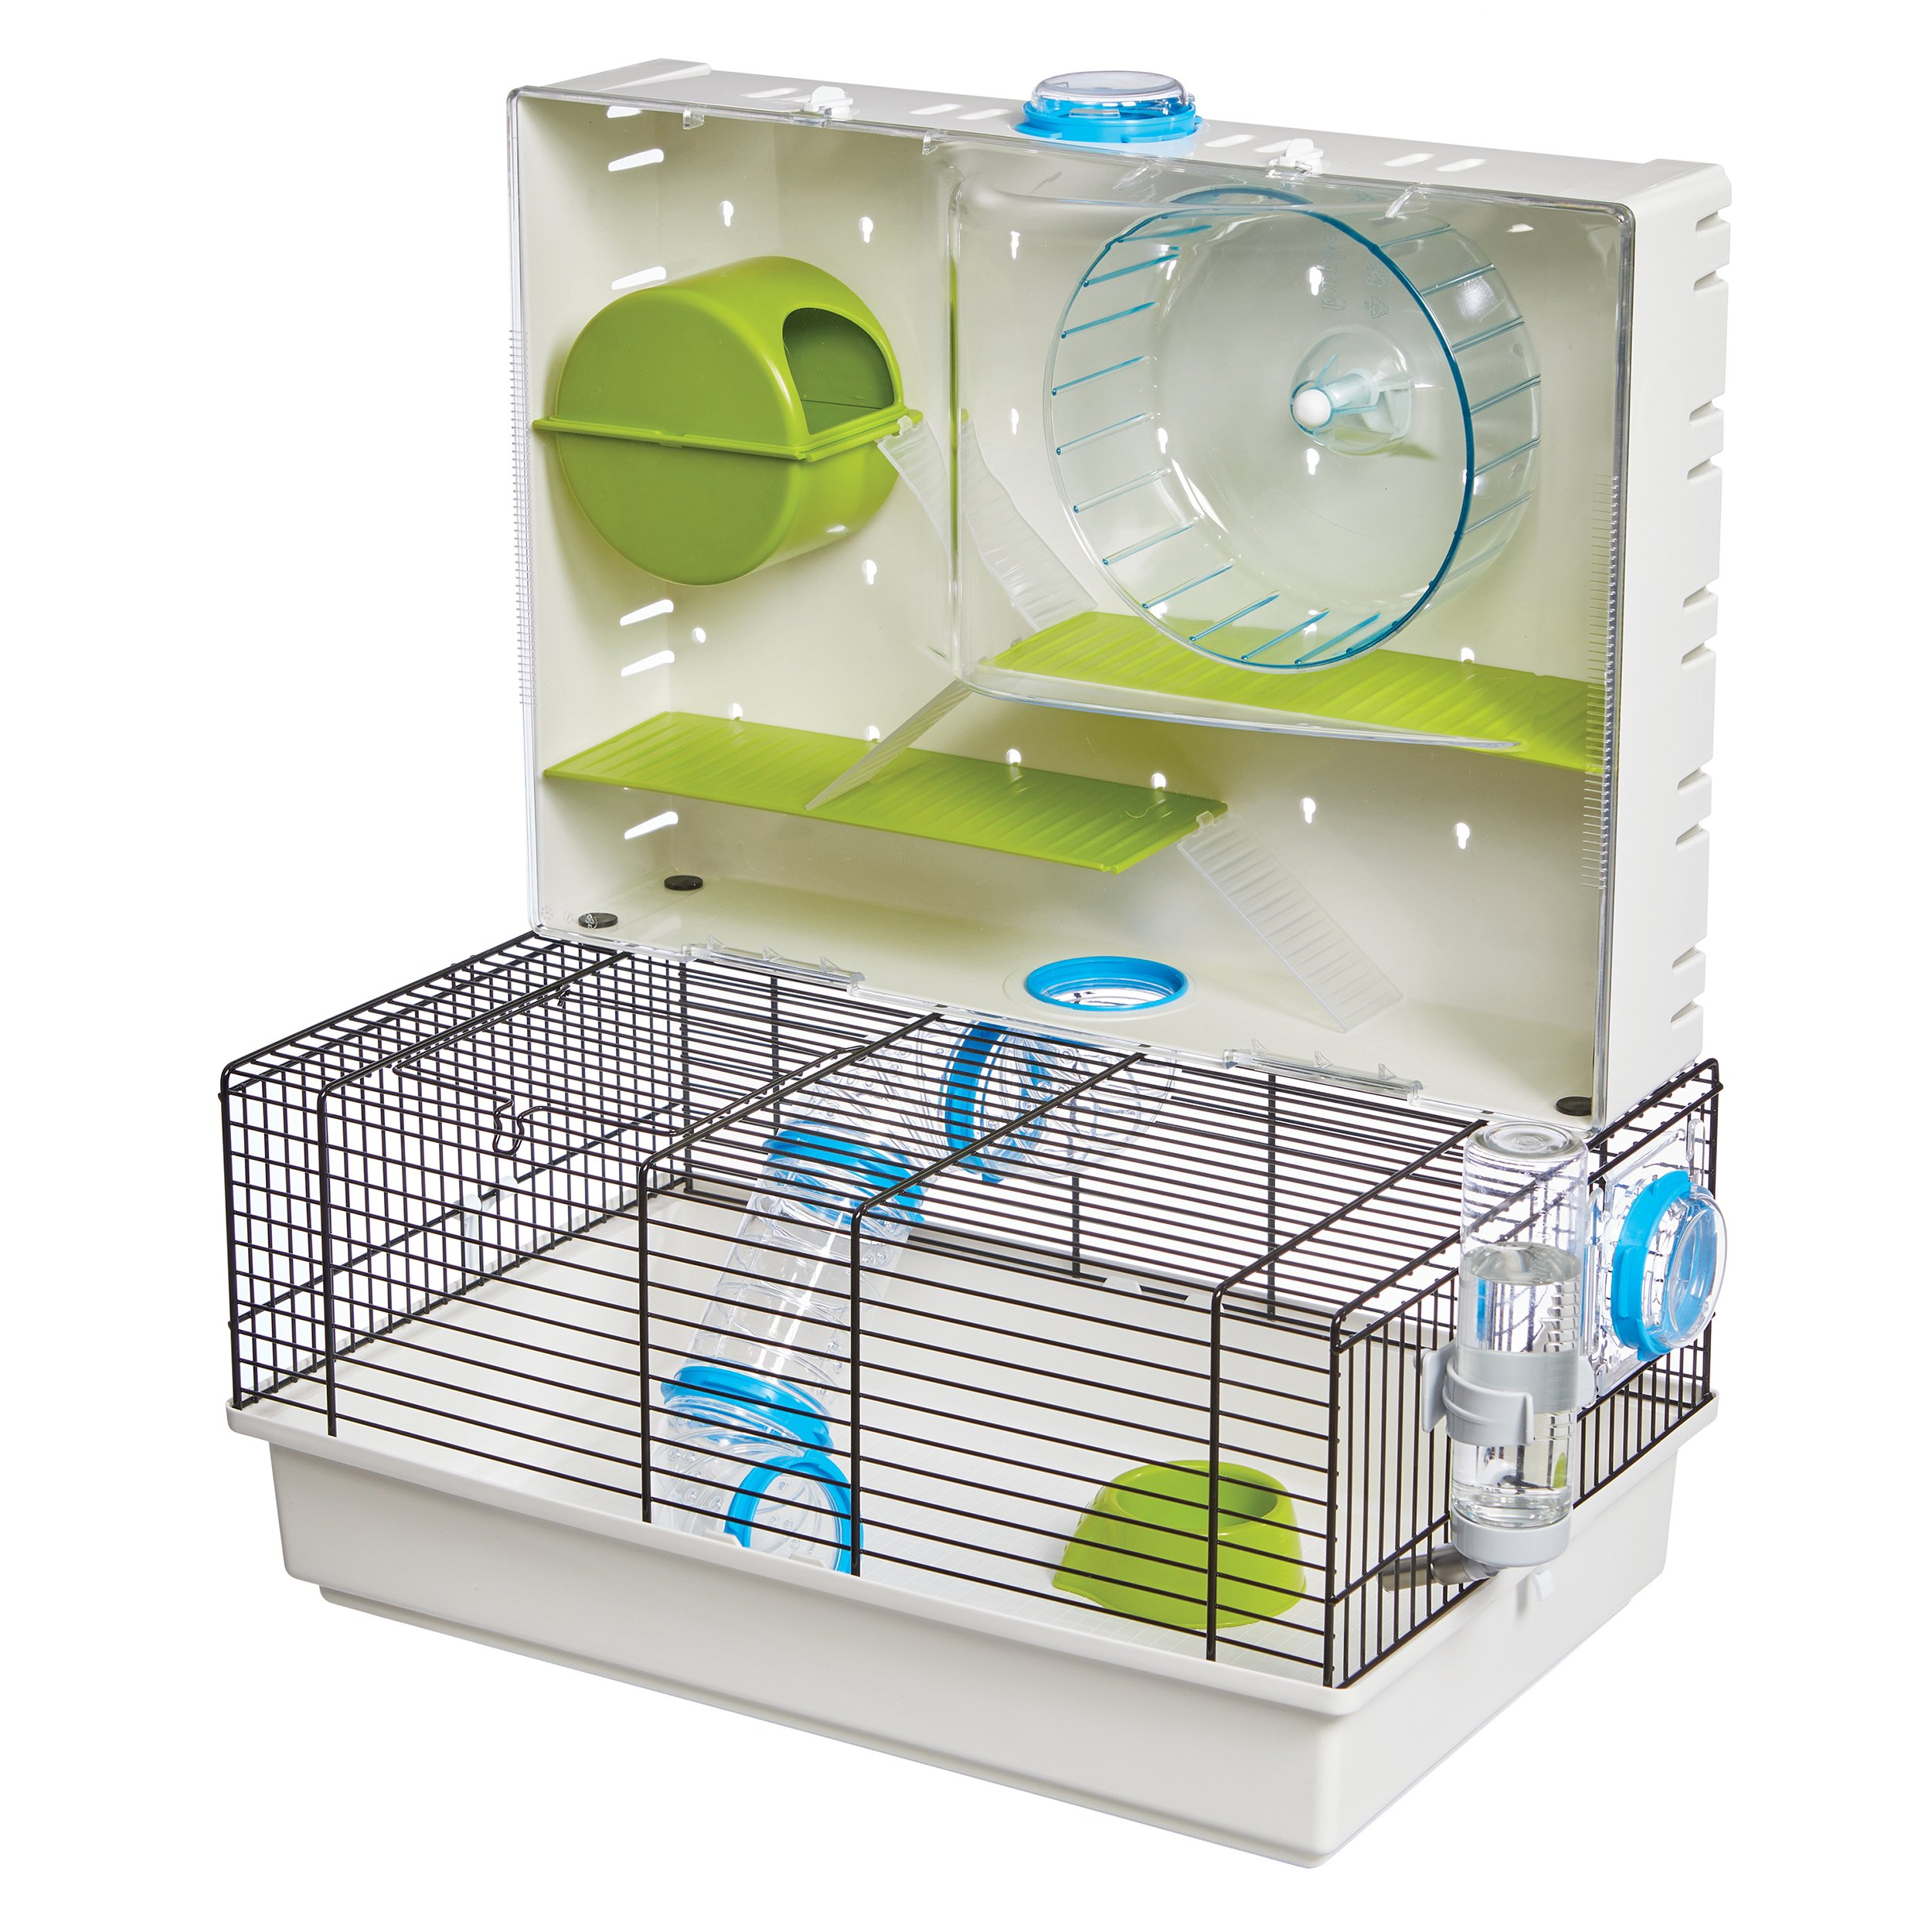 MidWest Homes for Pets Hamster Cage   Awesome Arcade Hamster Home   18.11'' x 11.61'' x 21.26''